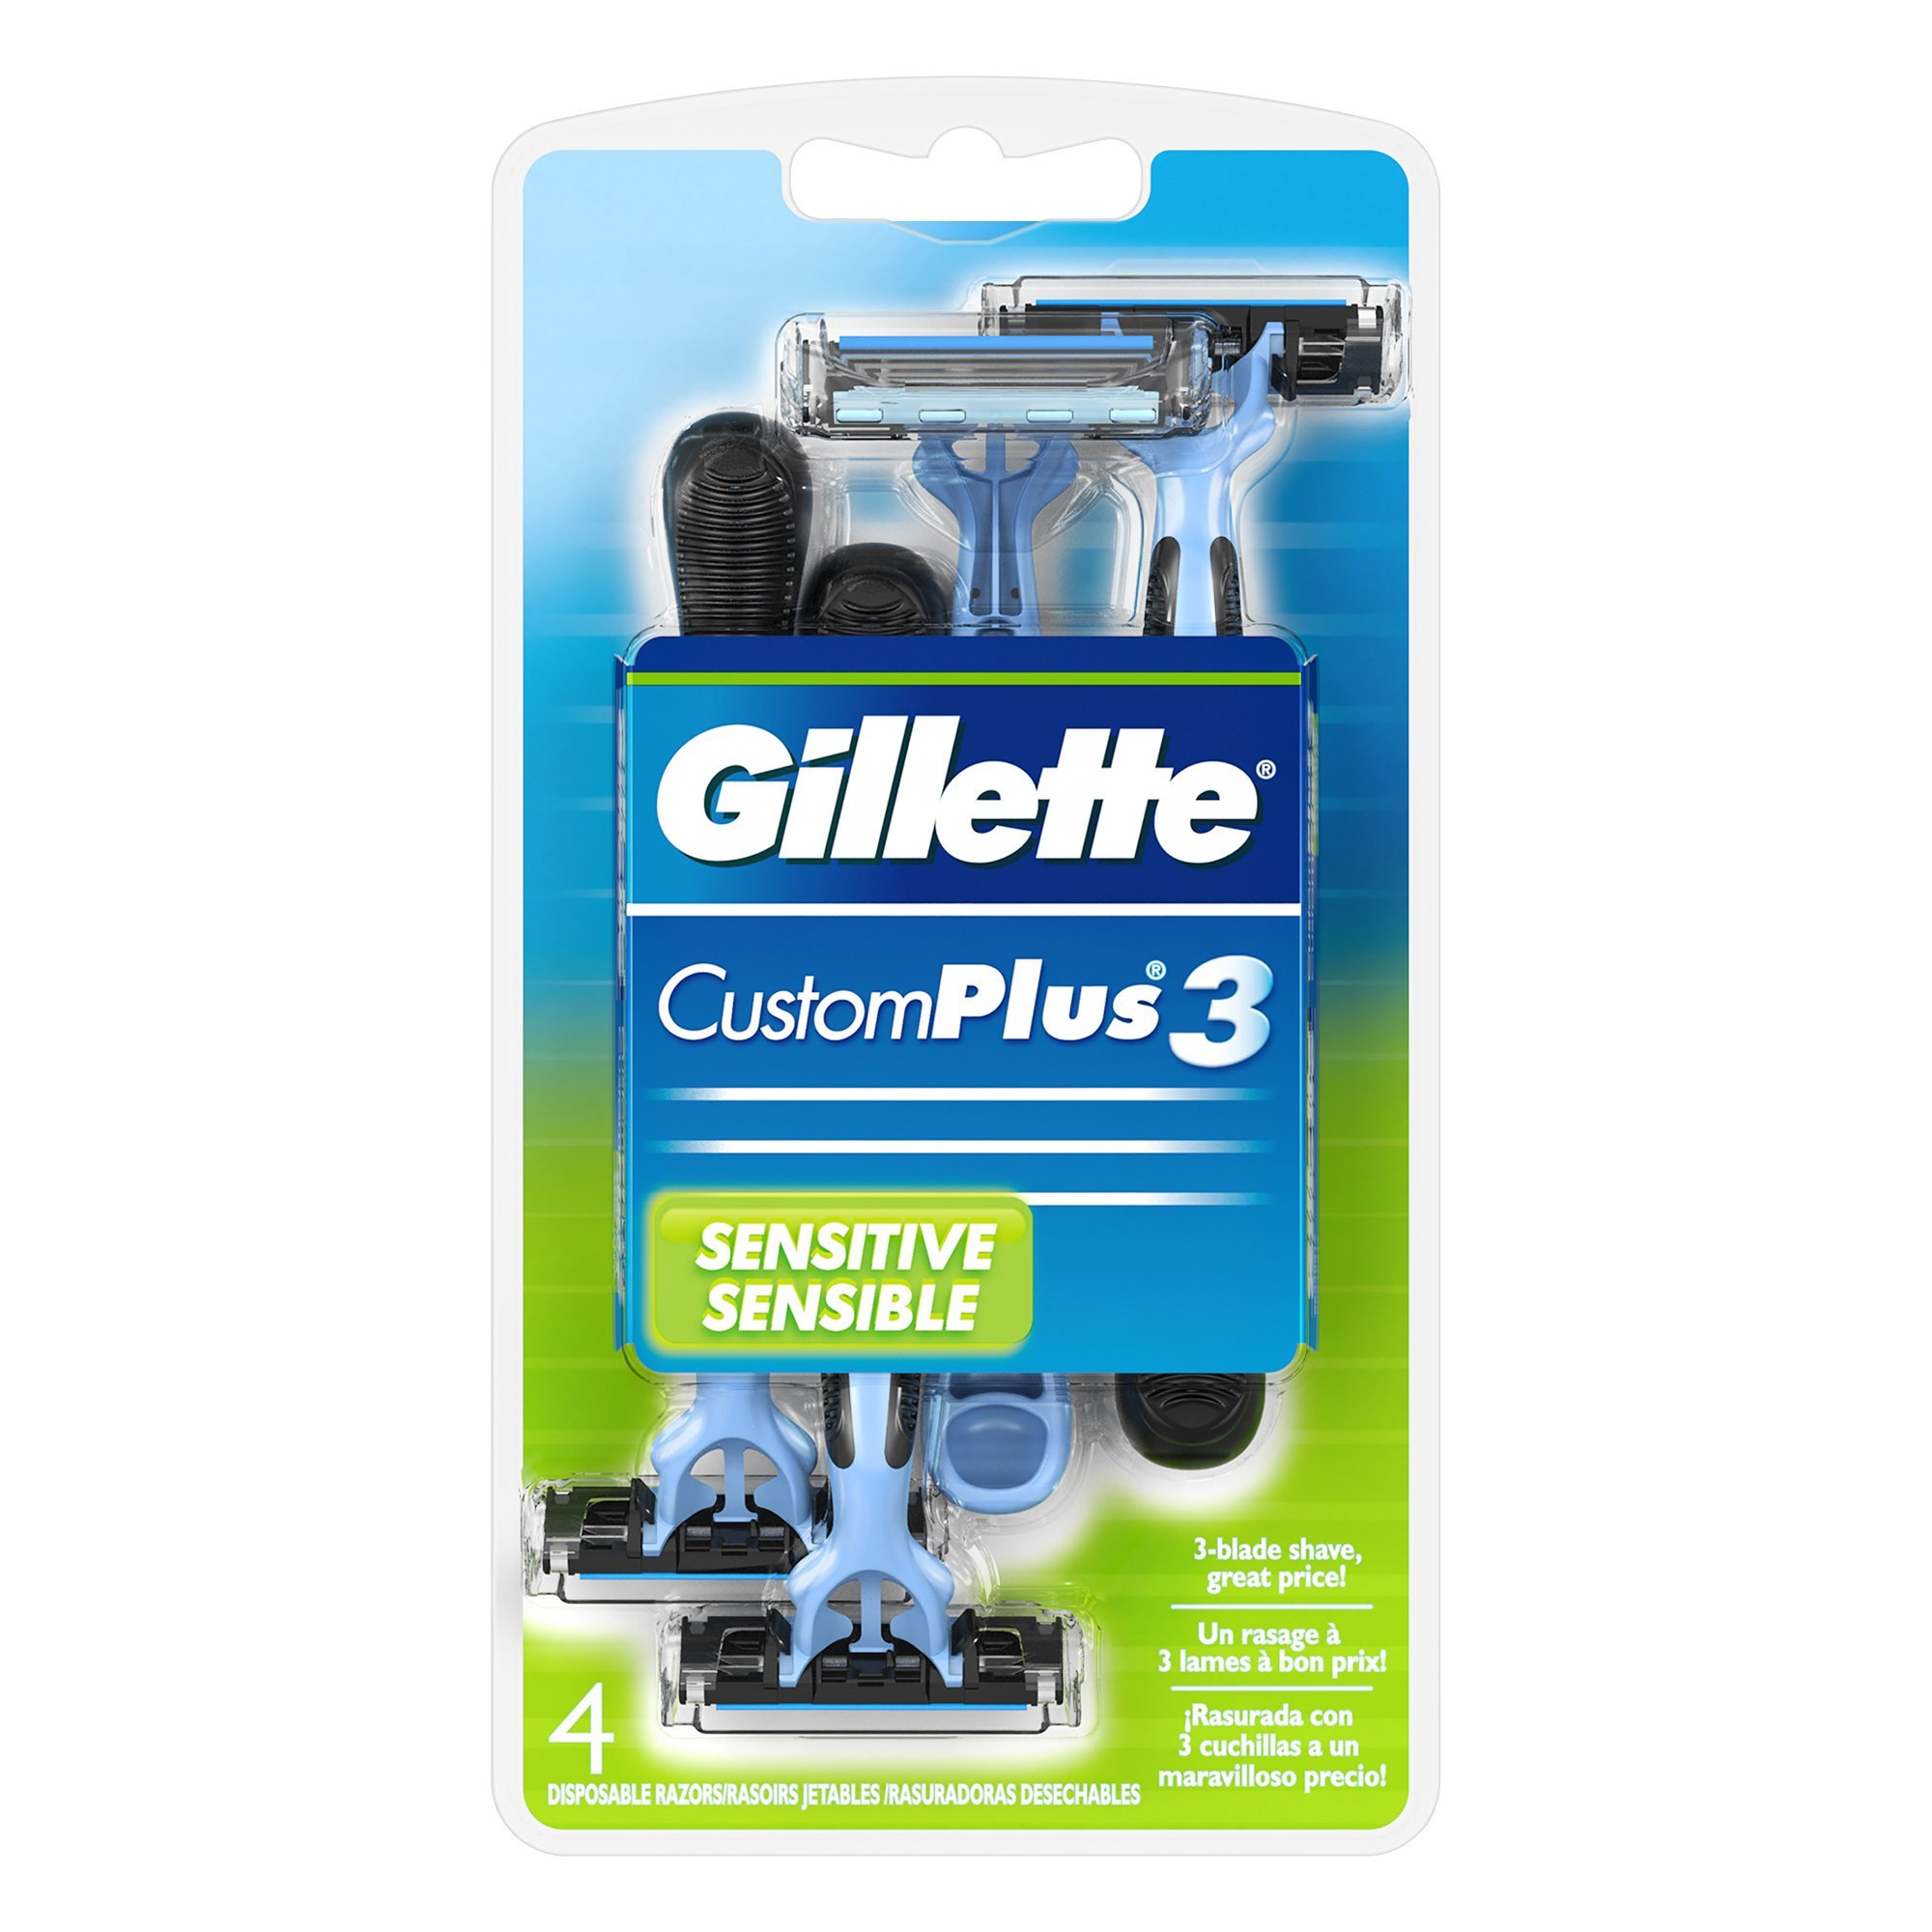 Gillette CustomPlus 3 Disposable Razor, Sensitive, 4 Count, Mens Razors / Blades